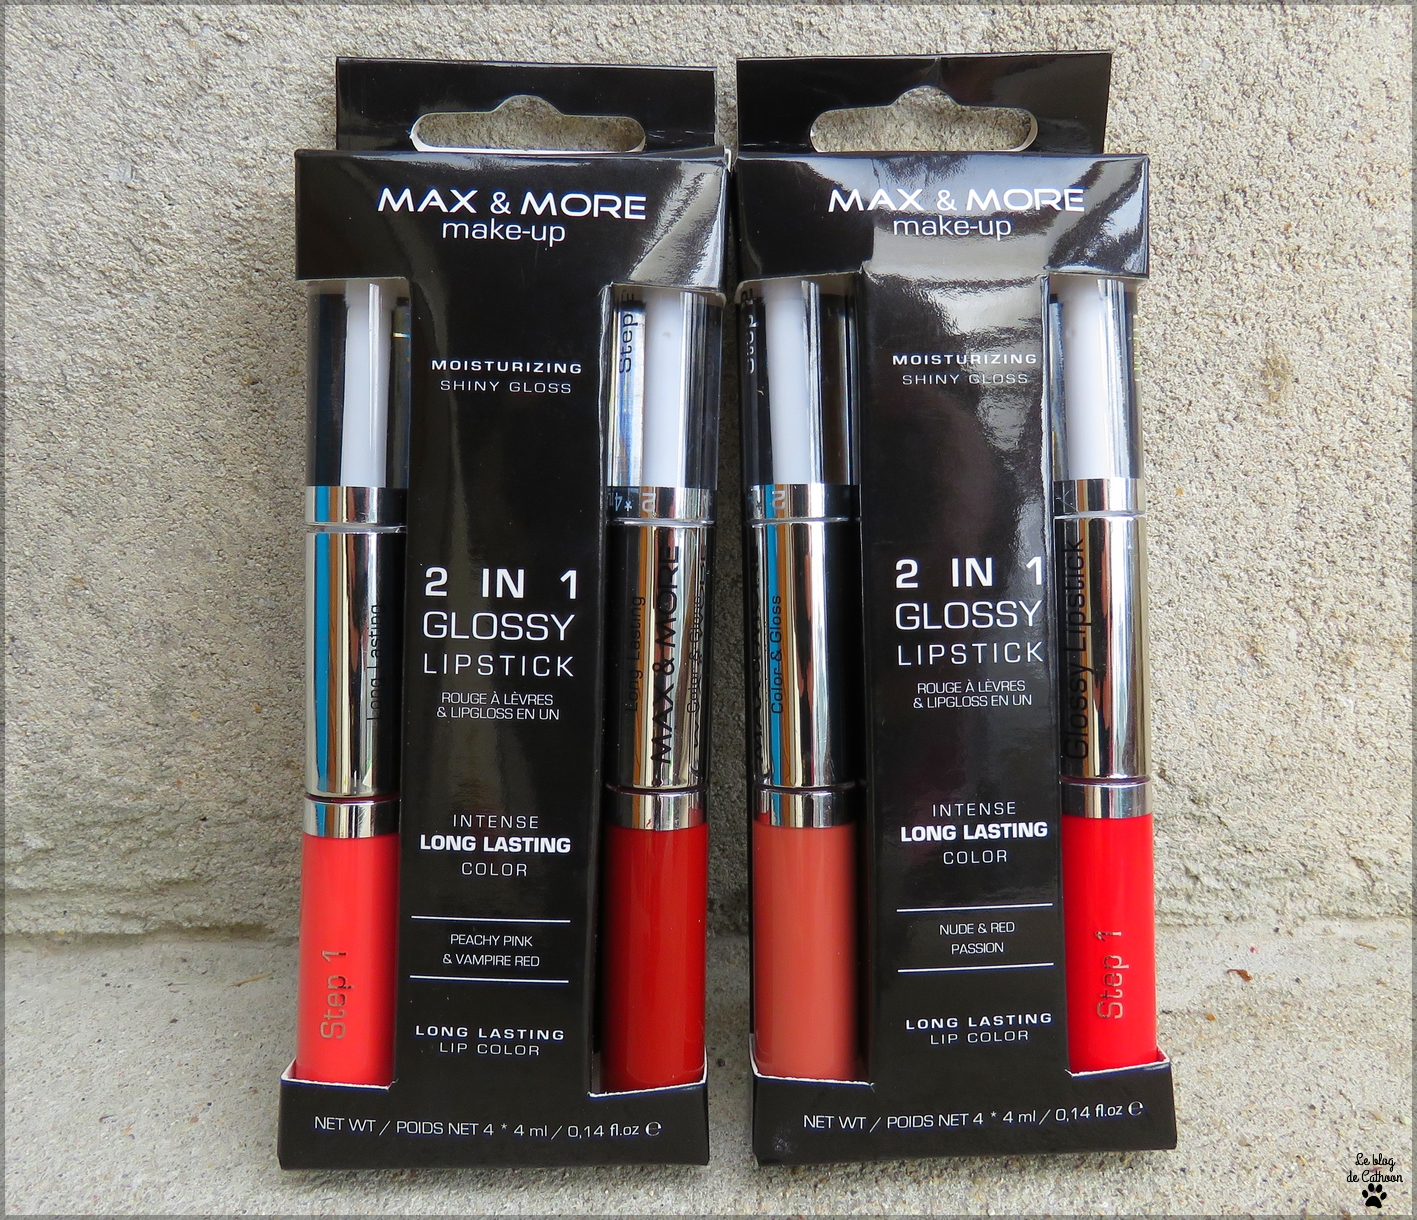 Intense Long Lasting Color - 2 in 1 Glossy Lipstic - Maxe & More